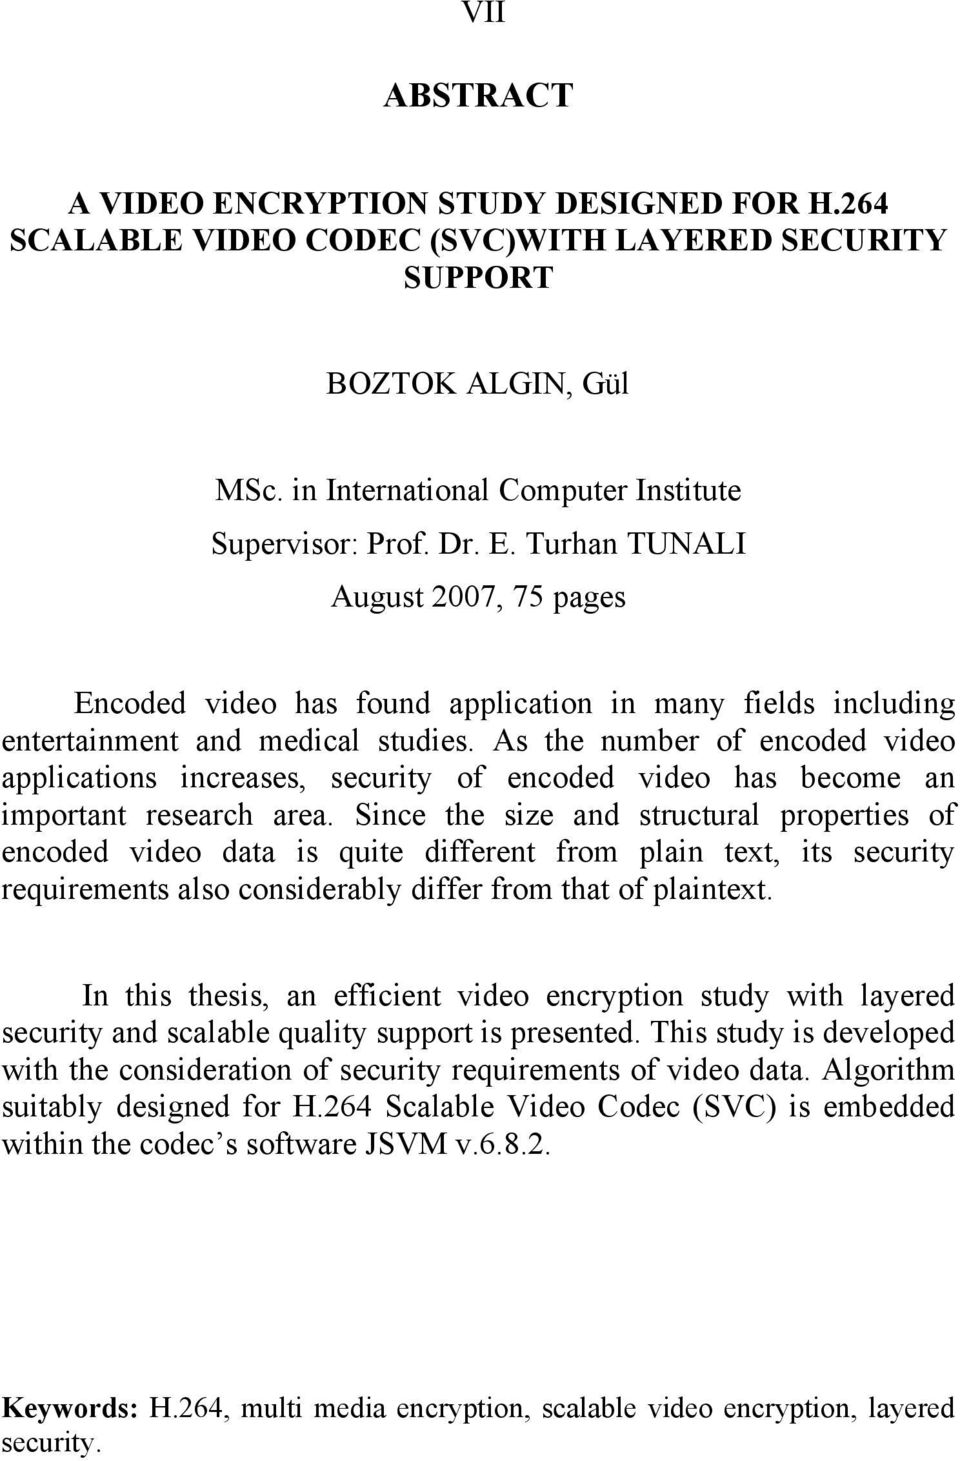 Since the size and structural properties of encoded video data is quite different from plain text, its security requirements also considerably differ from that of plaintext.